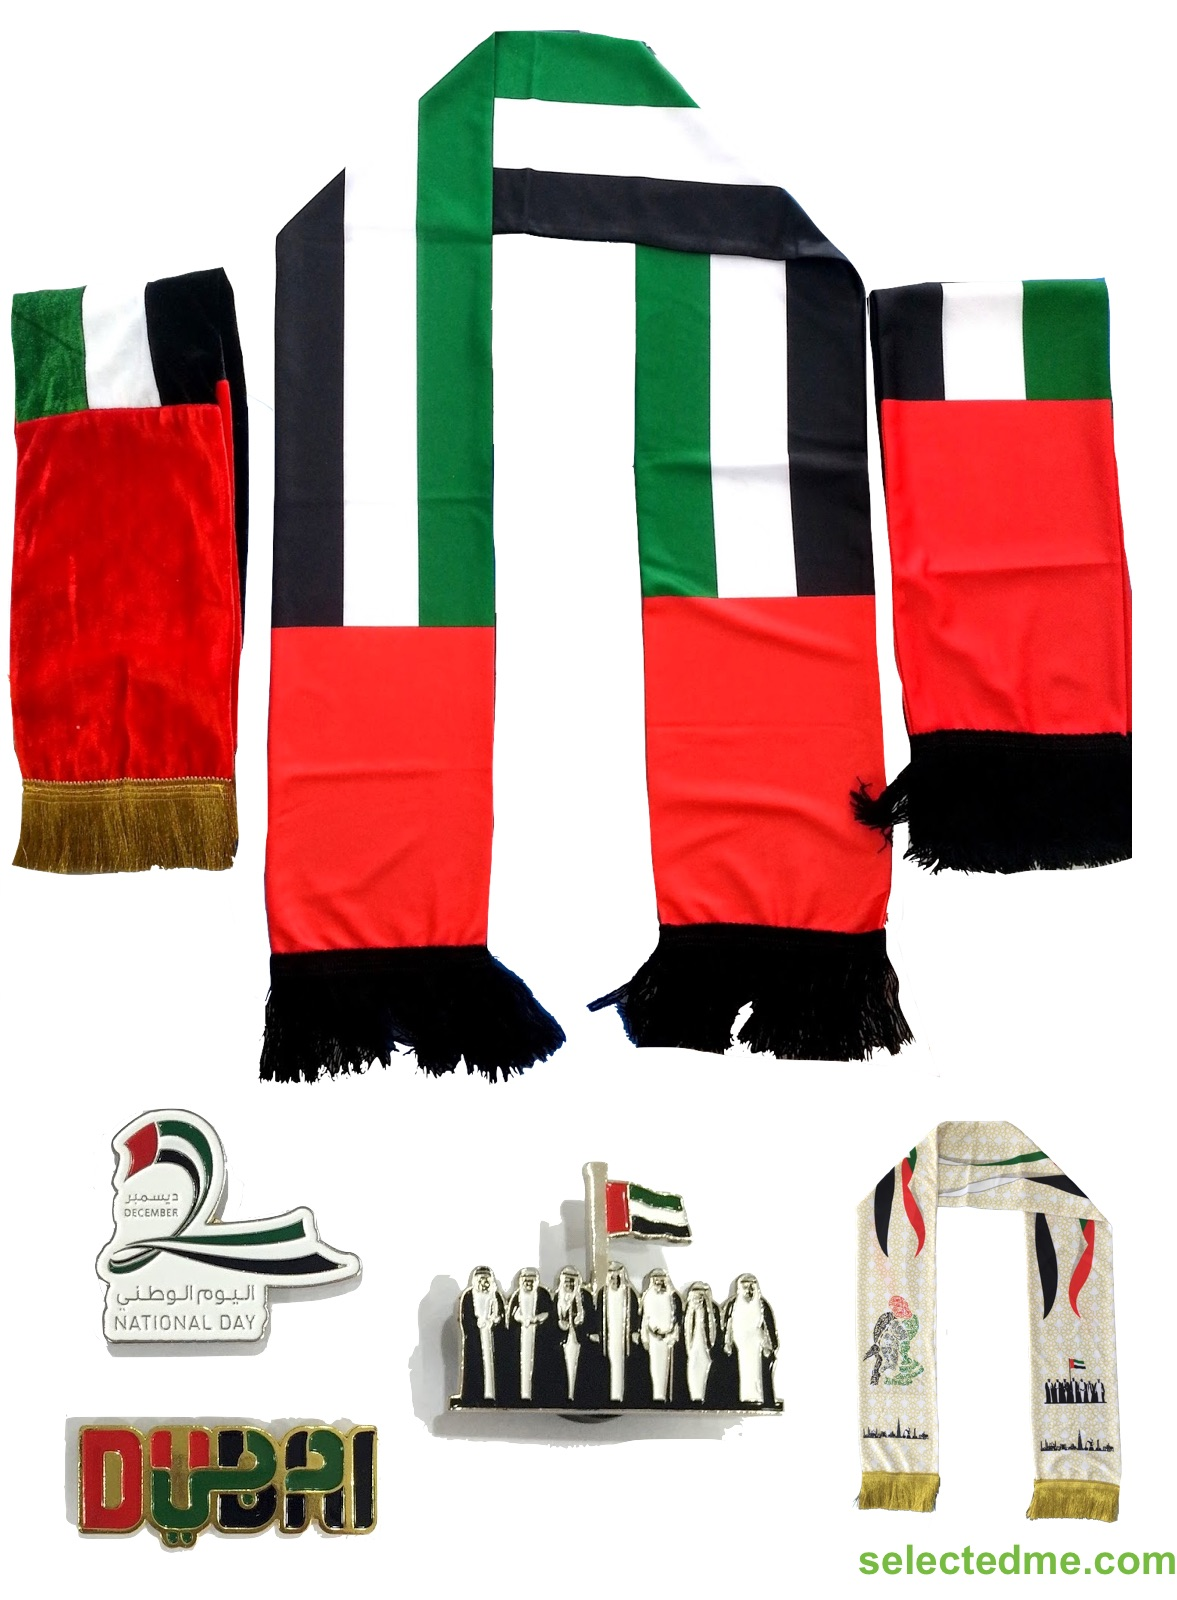 UAE National Day Gifts 2016 - Gifts Catalogue